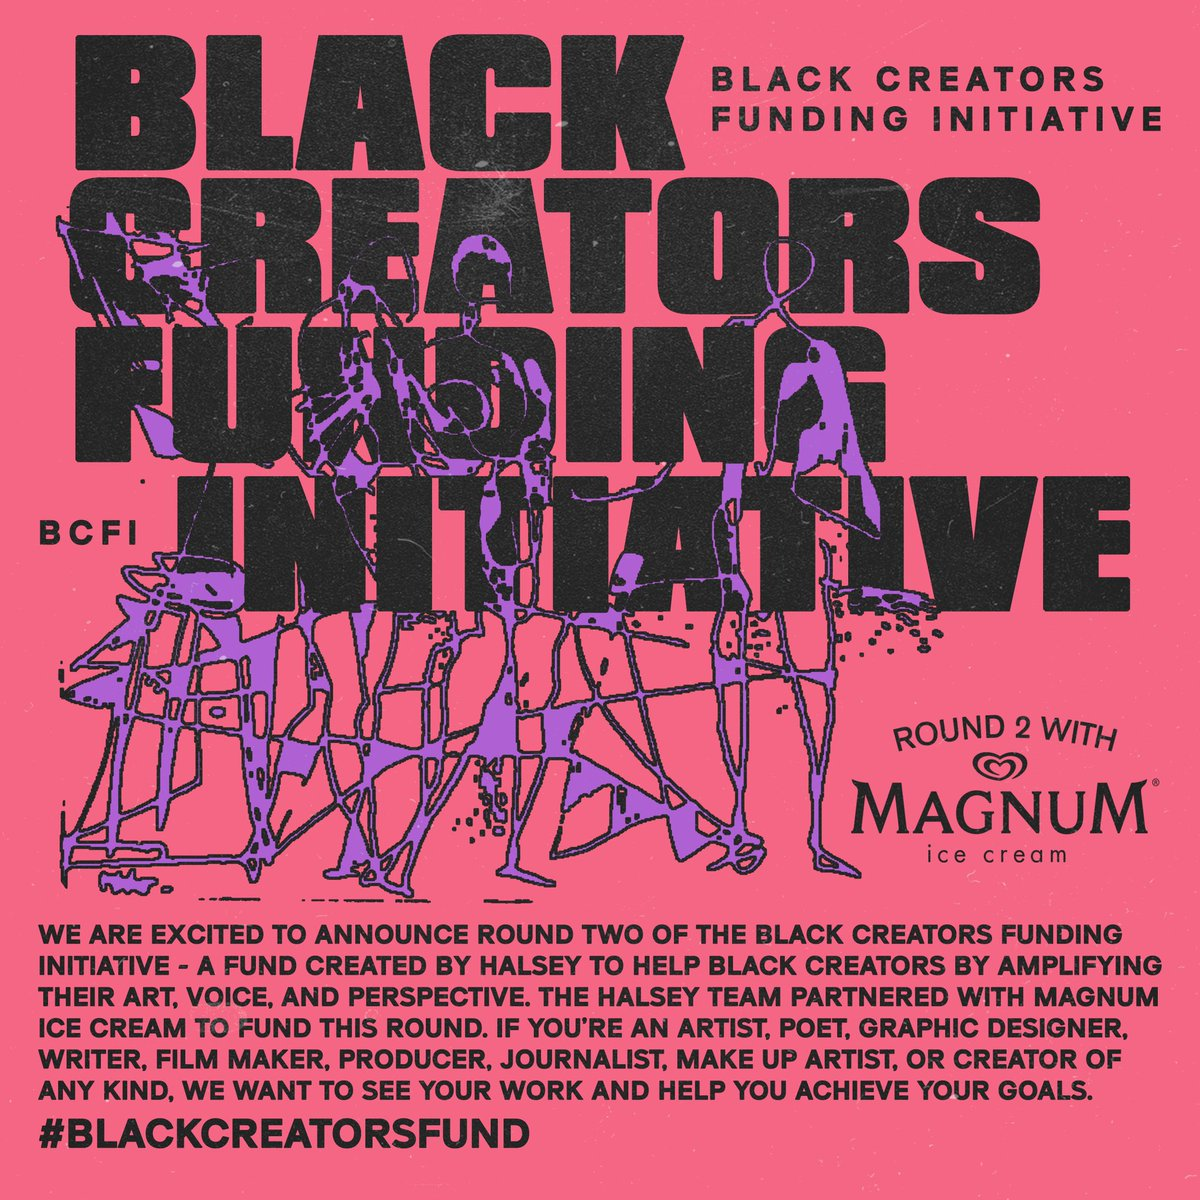 THE TIME HAS COME! Round 2 of the Black Creators Funding Initiative! We've partnered with @MagnumGlobal Ice Cream to bring more black creators the funds & support to share their work with the world. 💗 Use #BLACKCREATORSFUND & tag your favorite black creators in the replies!